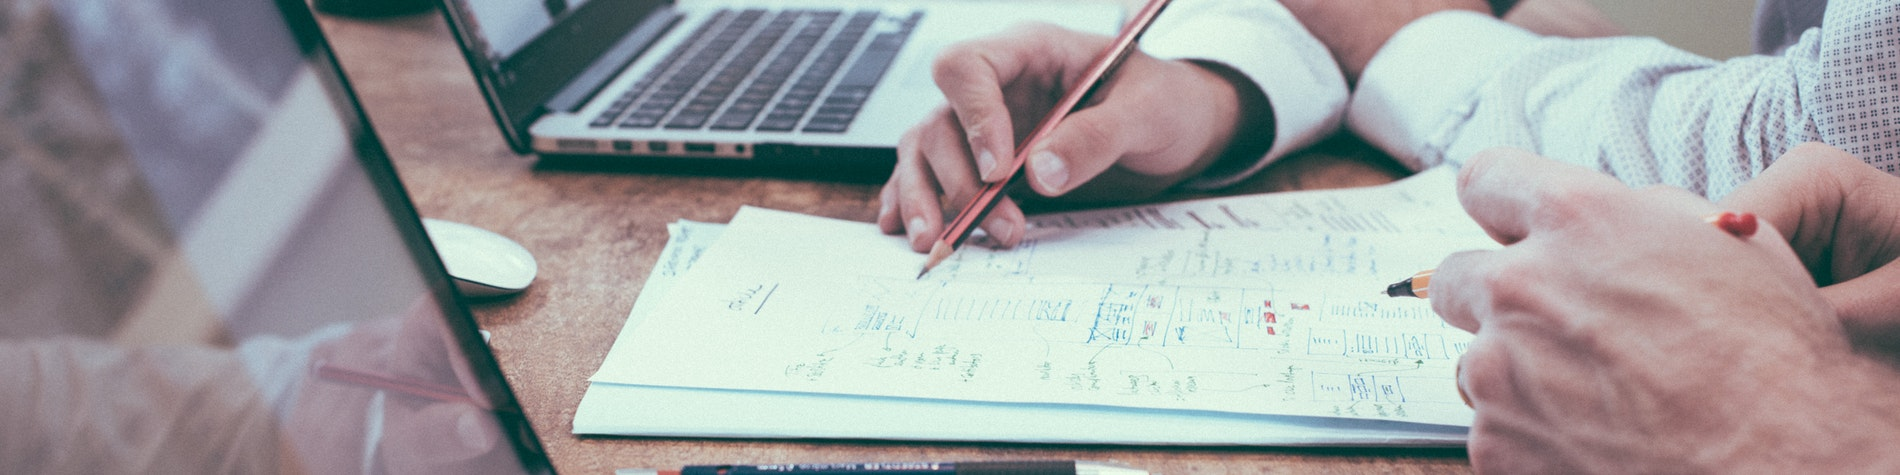 Contract Costs and IFRS 15 - BDO